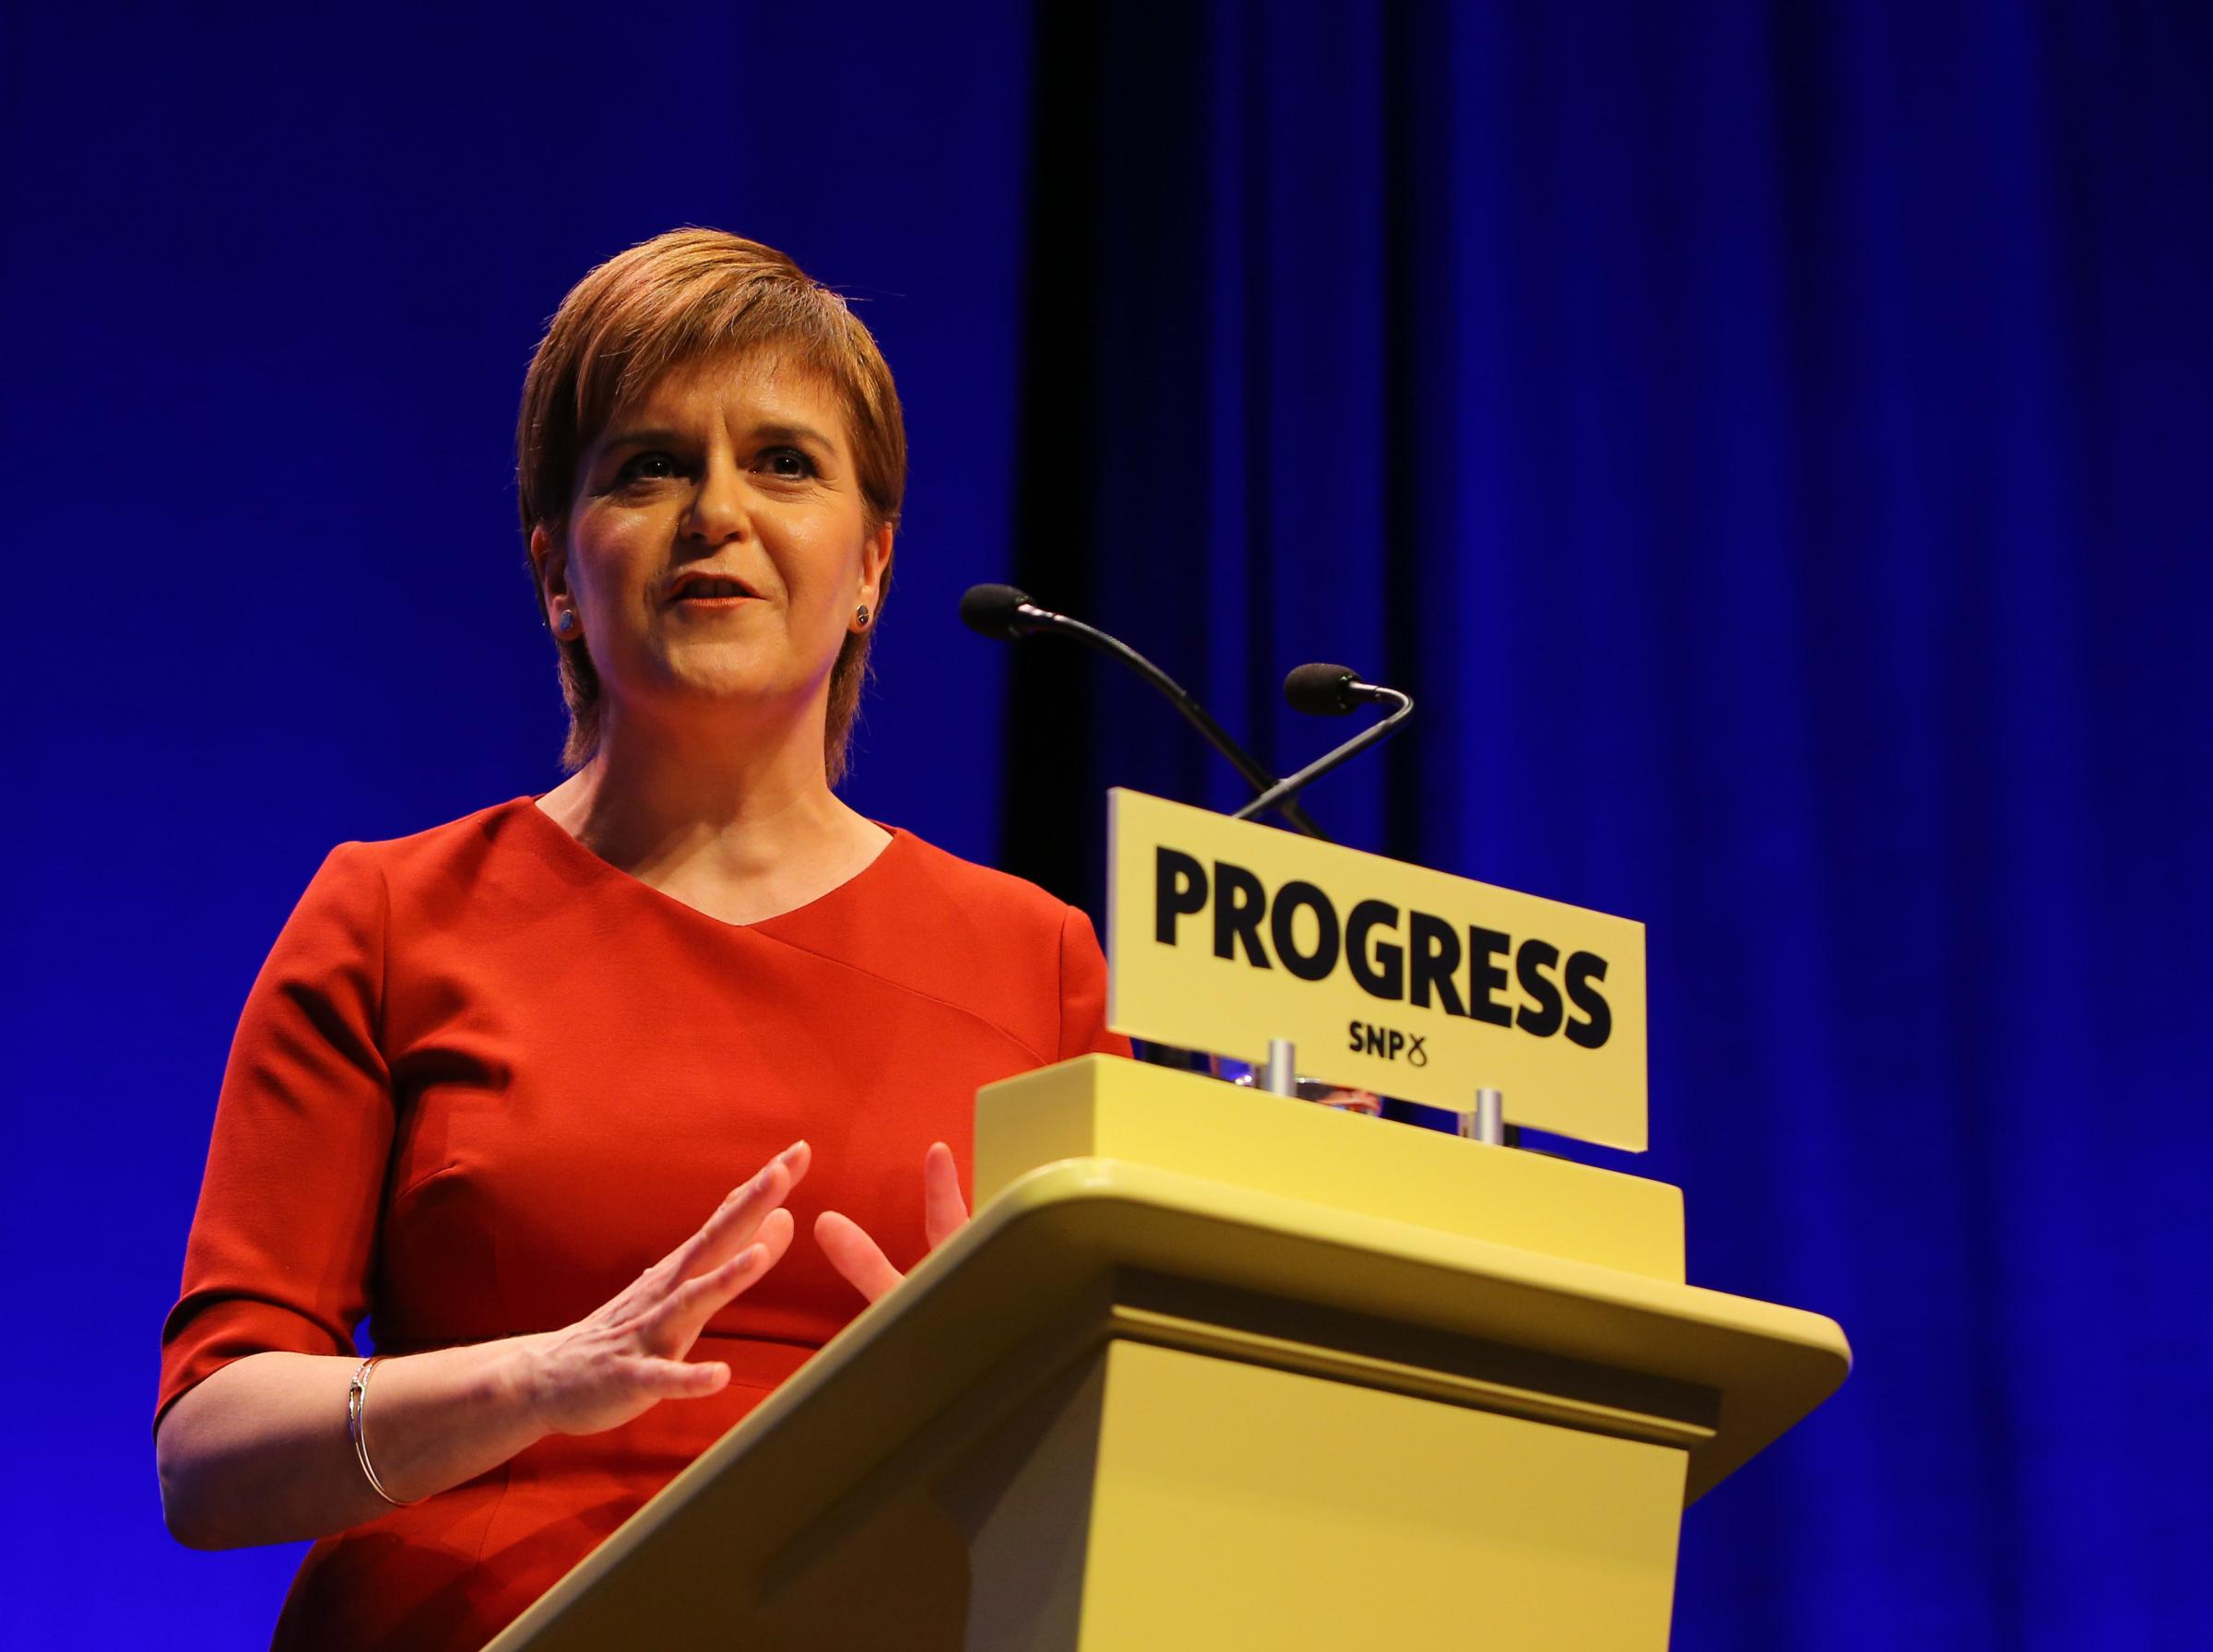 Nicola Sturgeon offered a message of hope during her SNP conference speech. Photograph: Colin Mearns